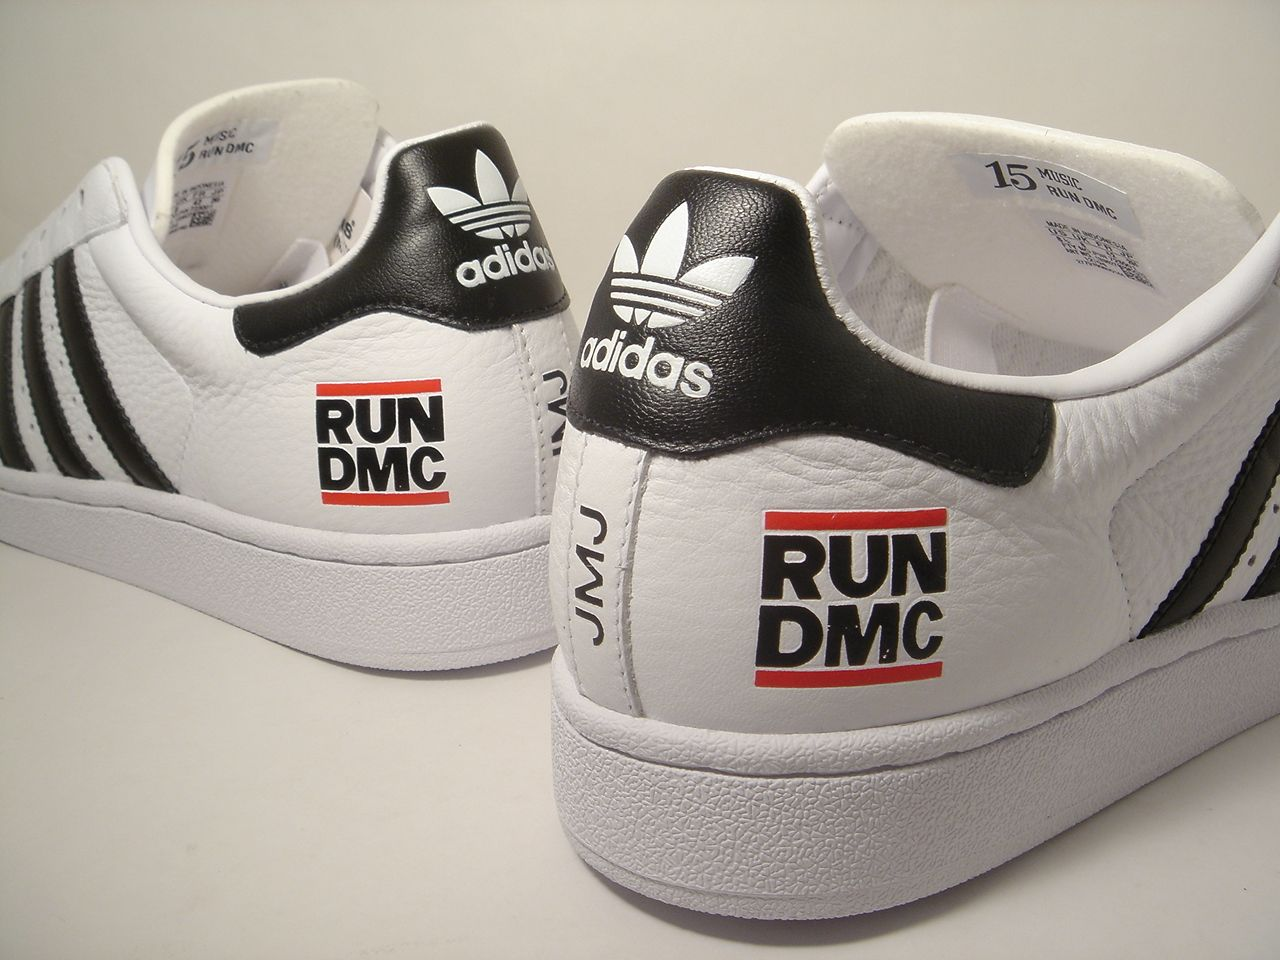 a5395e8146c23c Limited Edition Run DMC Addidas sneakers. Only 5000 of them were available.